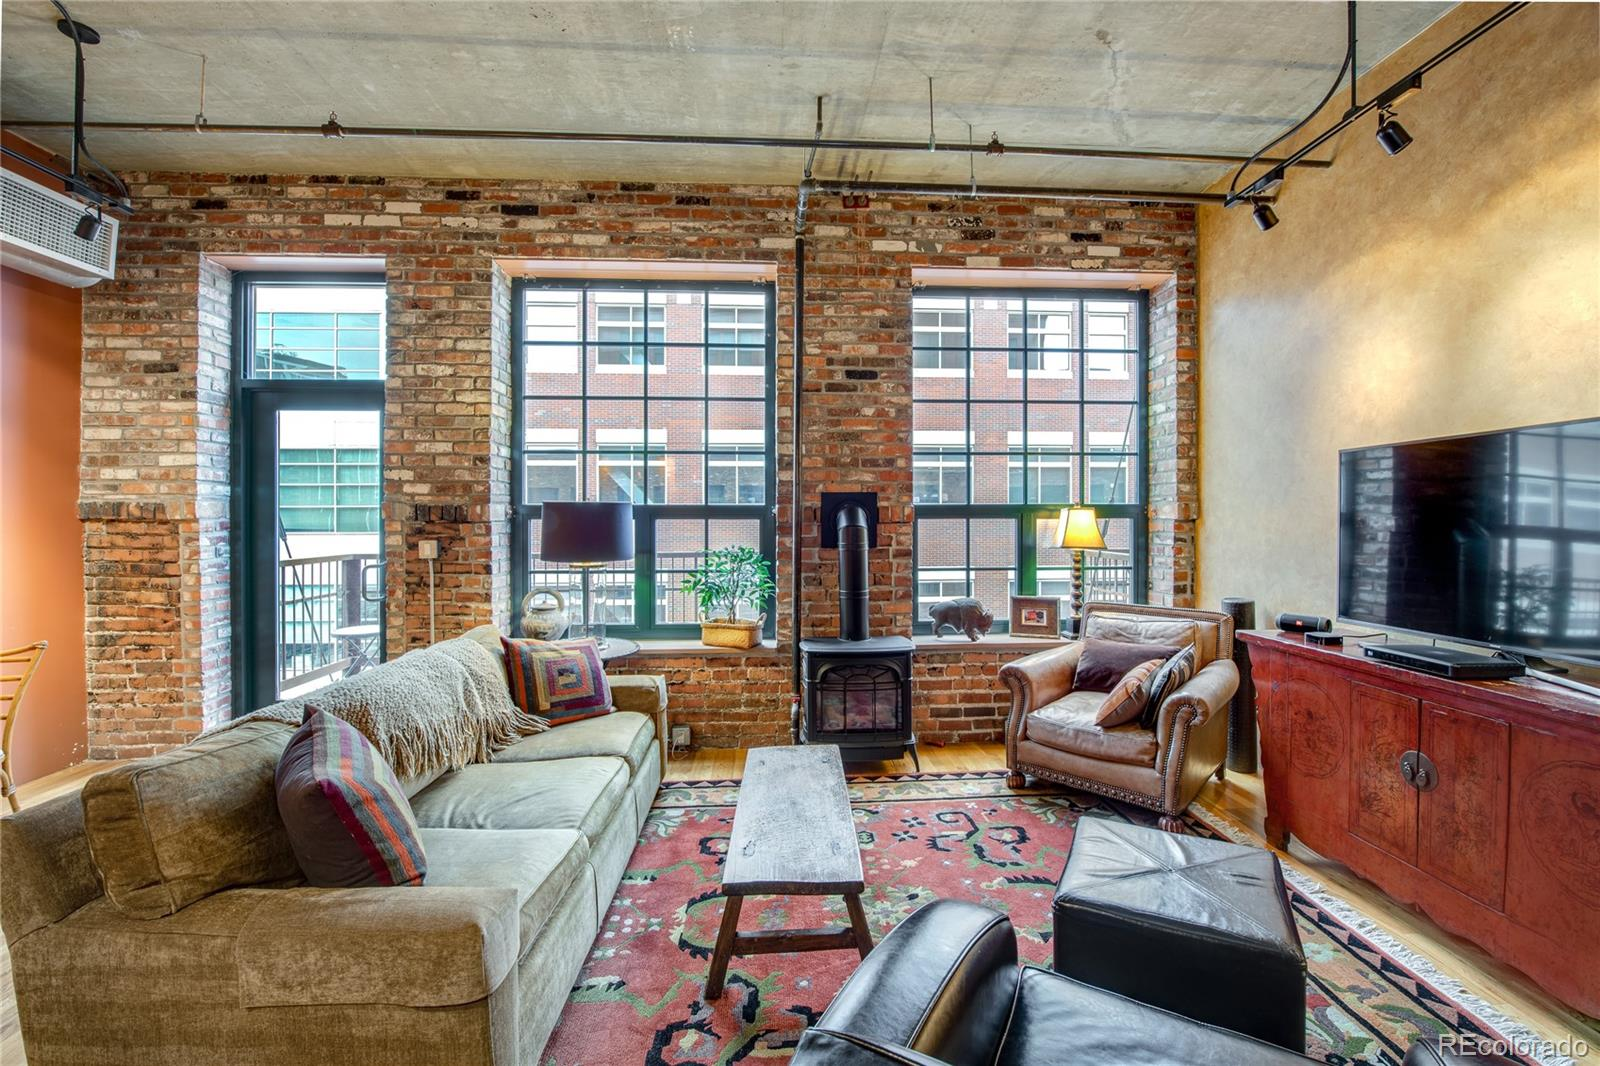 **VACANT, BEAUTIFULLY STAGED AND READY TO SHOW** Beautiful loft in the Historic Ice House Lofts. The best location for everything LoDo and Downtown has to offer. Sports venues, restaurants, cultural events, train to the plane, Union Station (Denver's living room), McGregor Square, Cherry Creek Path, and more. 1 bedroom (very large), 1 bath, open floor plan with living area, dining area, great kitchen with large island for entertaining, and a Virginia Stove fireplace. Balcony with a sweeping mountain view. 1 parking in the garage, and 1 storage unit. Exposed Brick. Large windows across one end of the loft. A very good one-bedroom at the Ice House, probably one of the best. The building has great amenities. Full-size fitness room with up to date equipment, rooftop deck to enjoy the views, entertain or just hang out. Don't miss this one. If you want to be downtown this is the place to be.